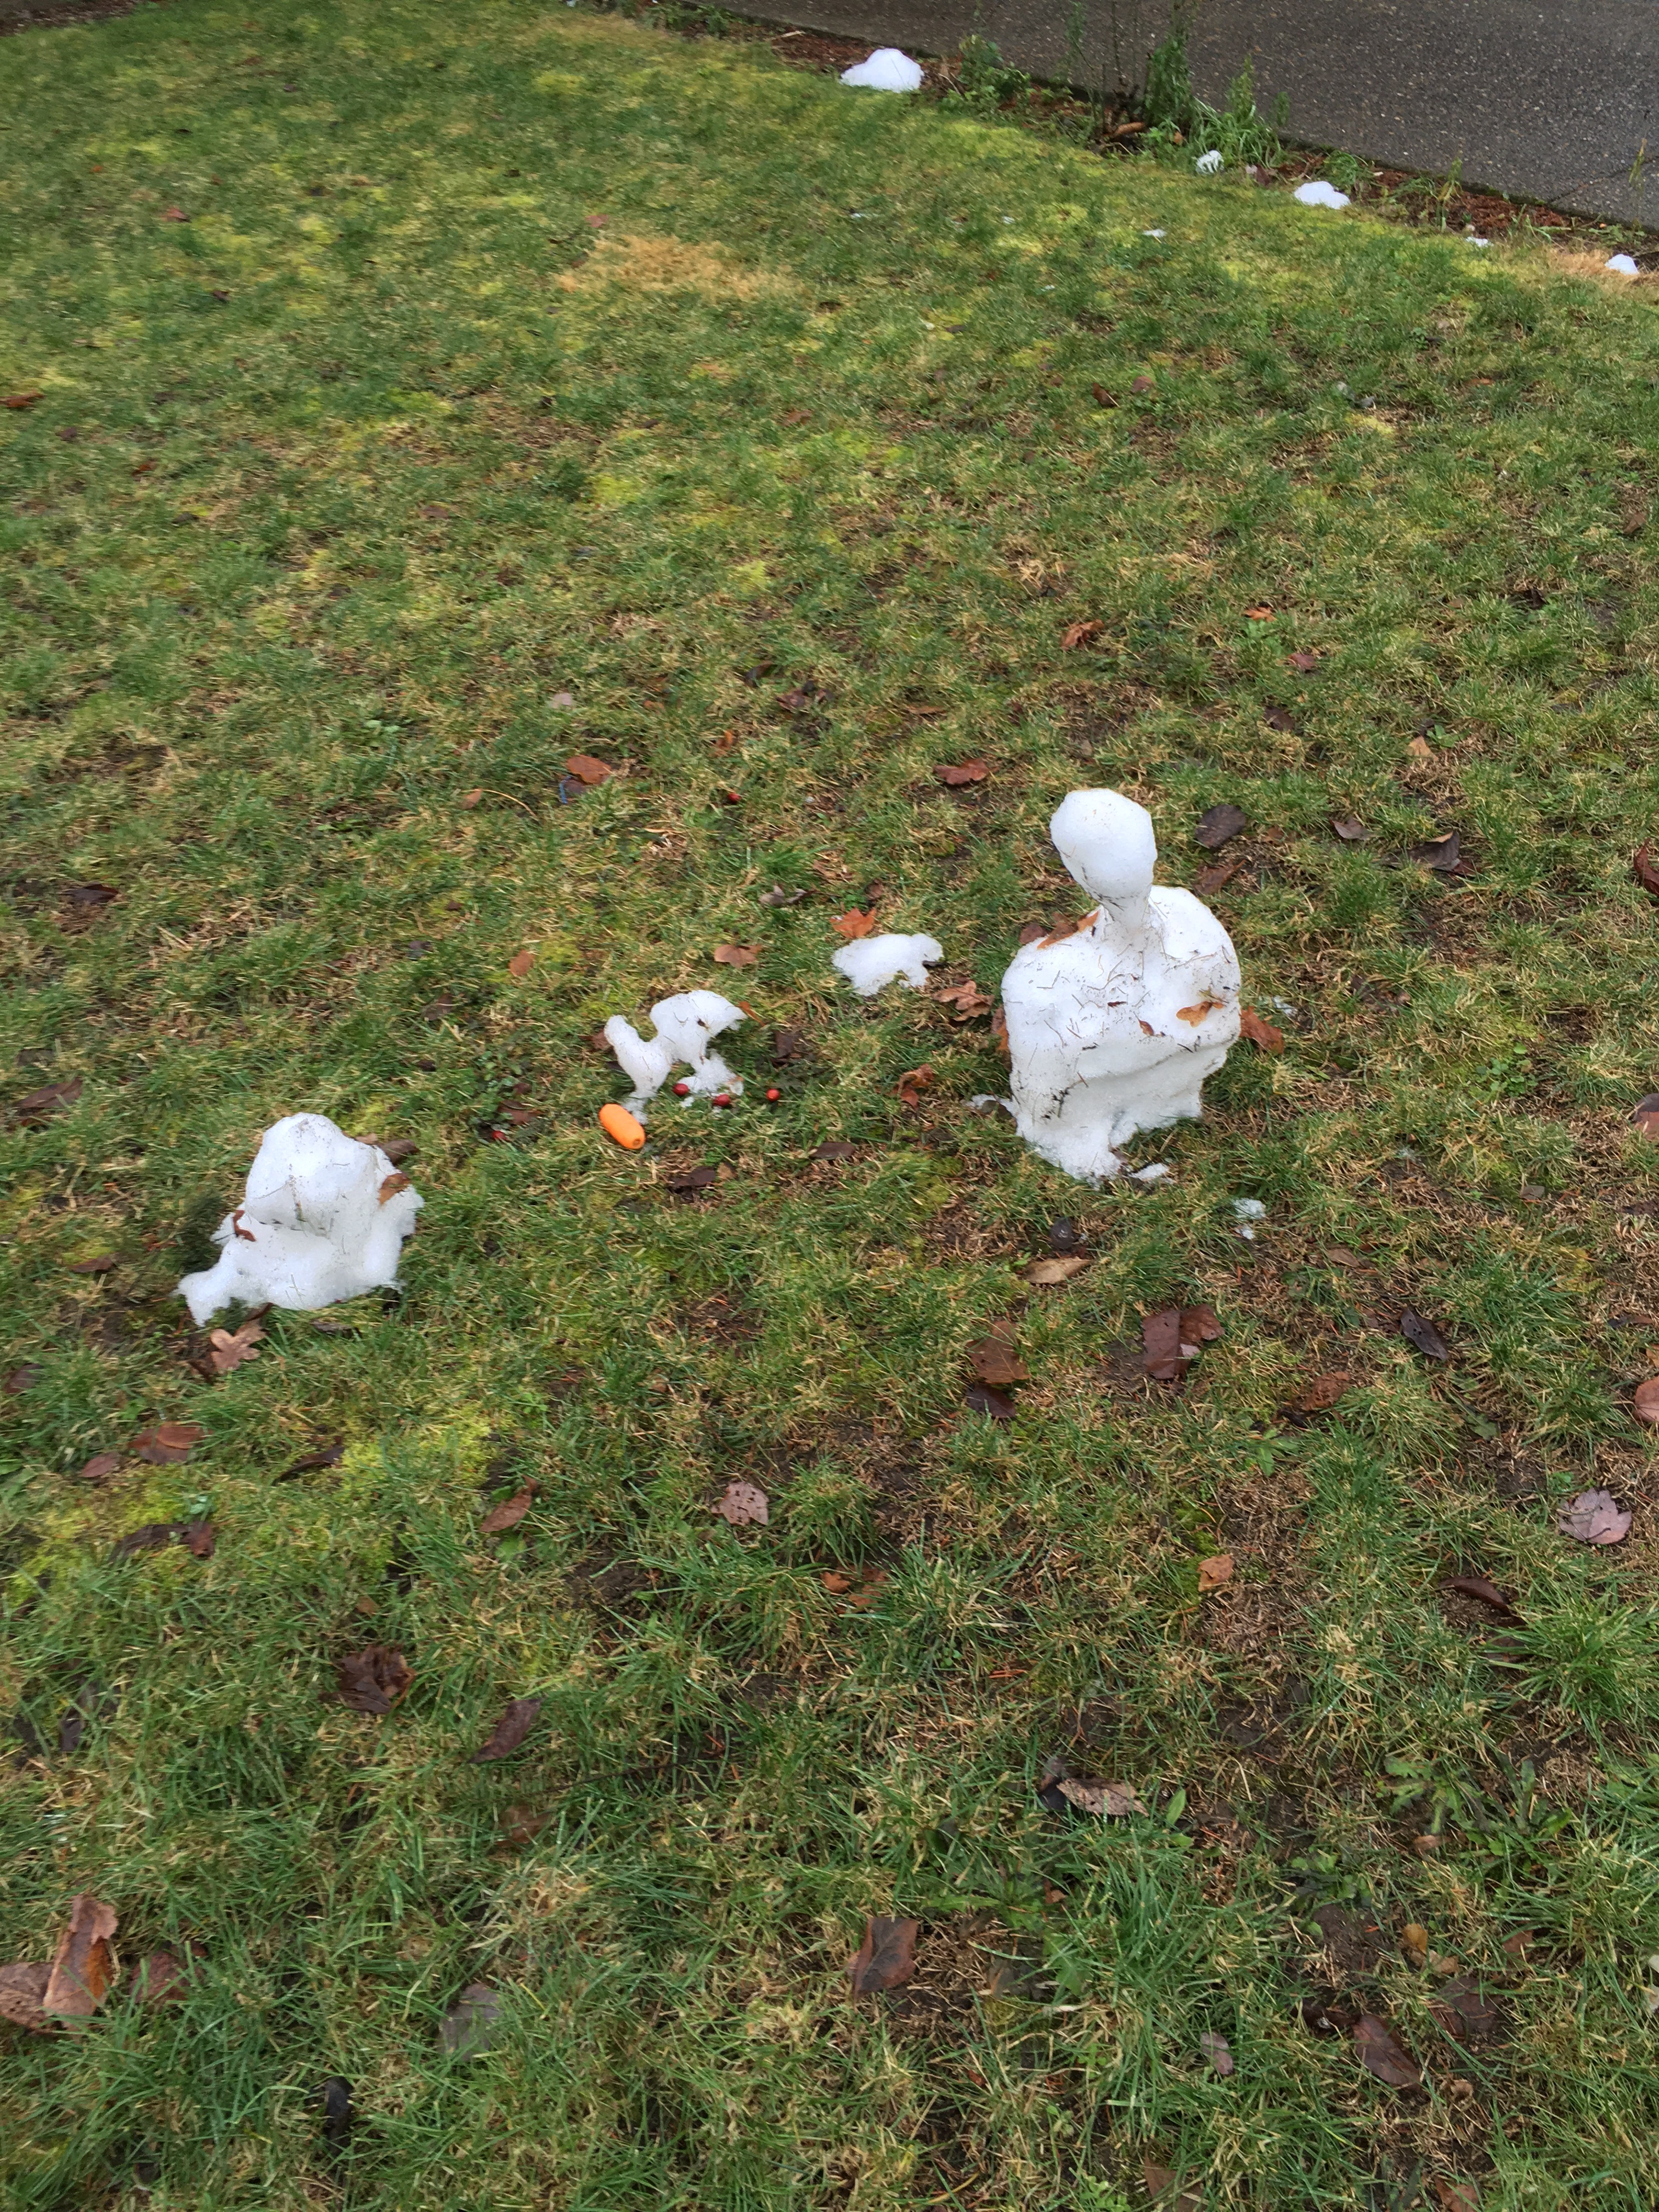 A mostly melted snowman sits in an otherwise snowless yard near a half-eaten carrot.